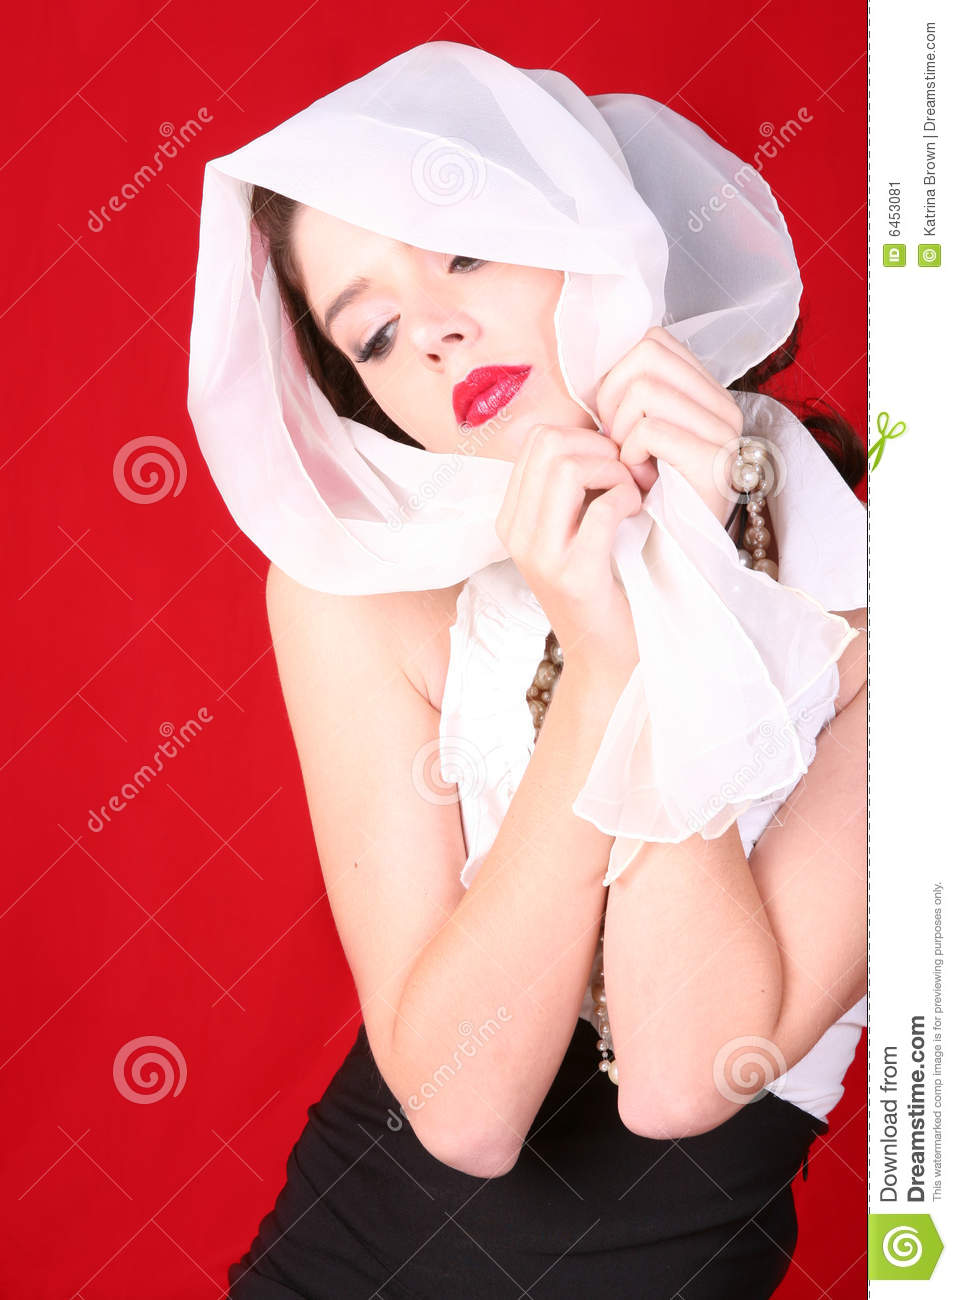 Retro Vintage Style Woman With Scarf on Her Head